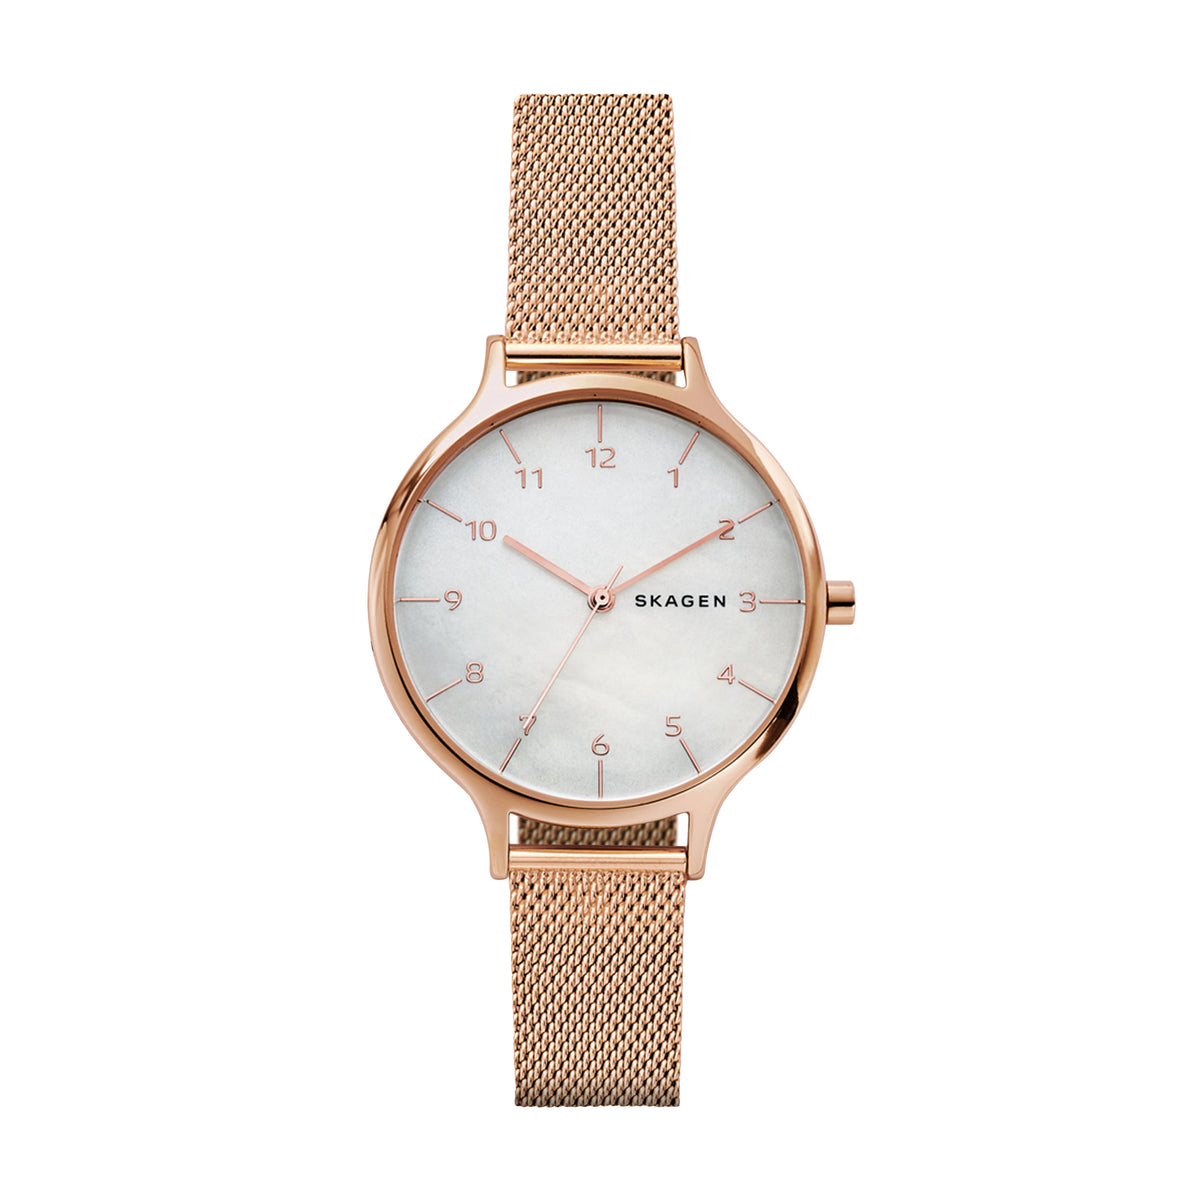 Skagen - Anita Rose Gold-Tone Steel-Mesh Watch